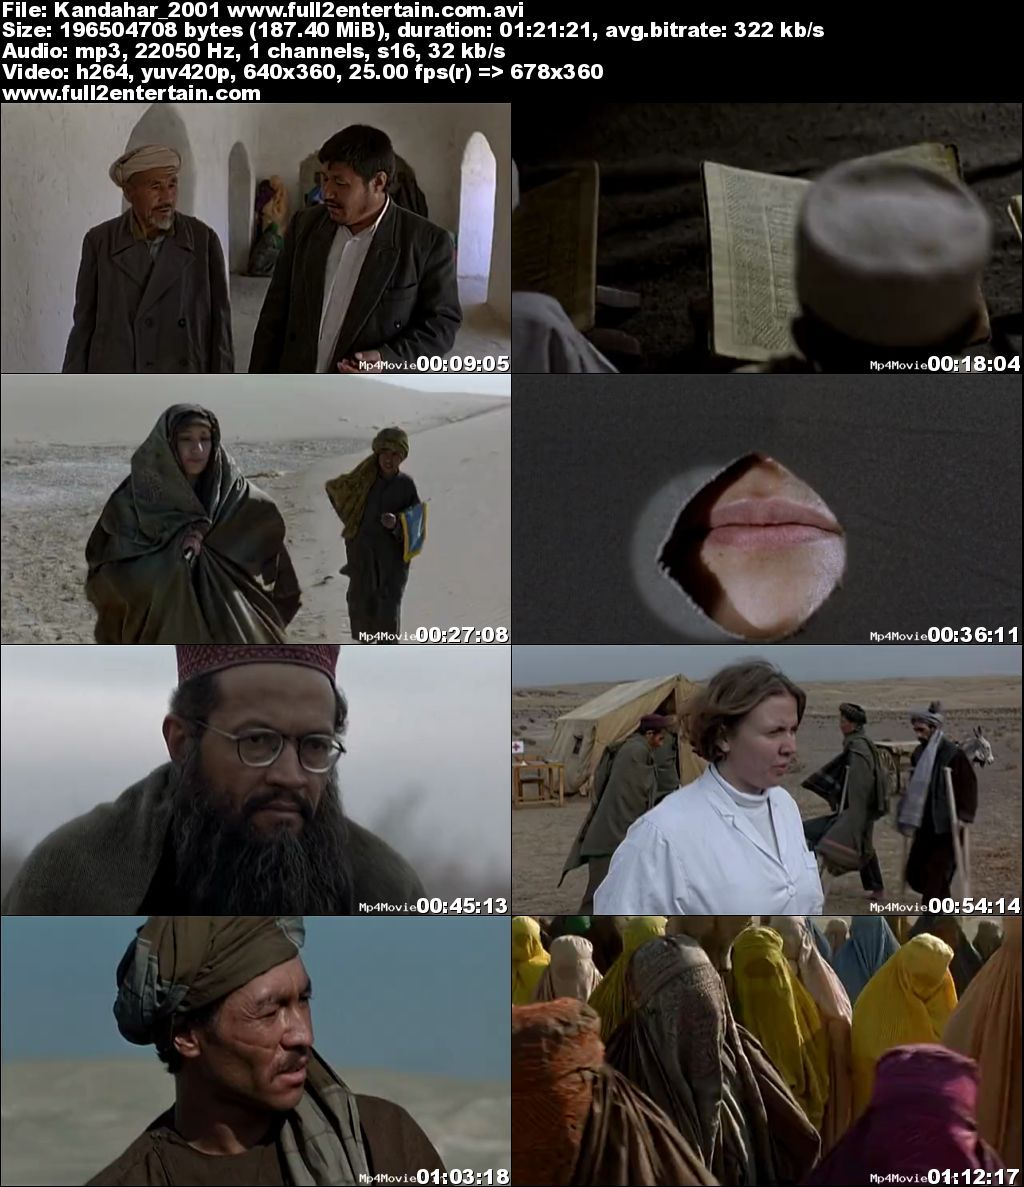 Kandahar 2001 Full Movie Download Free in Dvdrip 480p